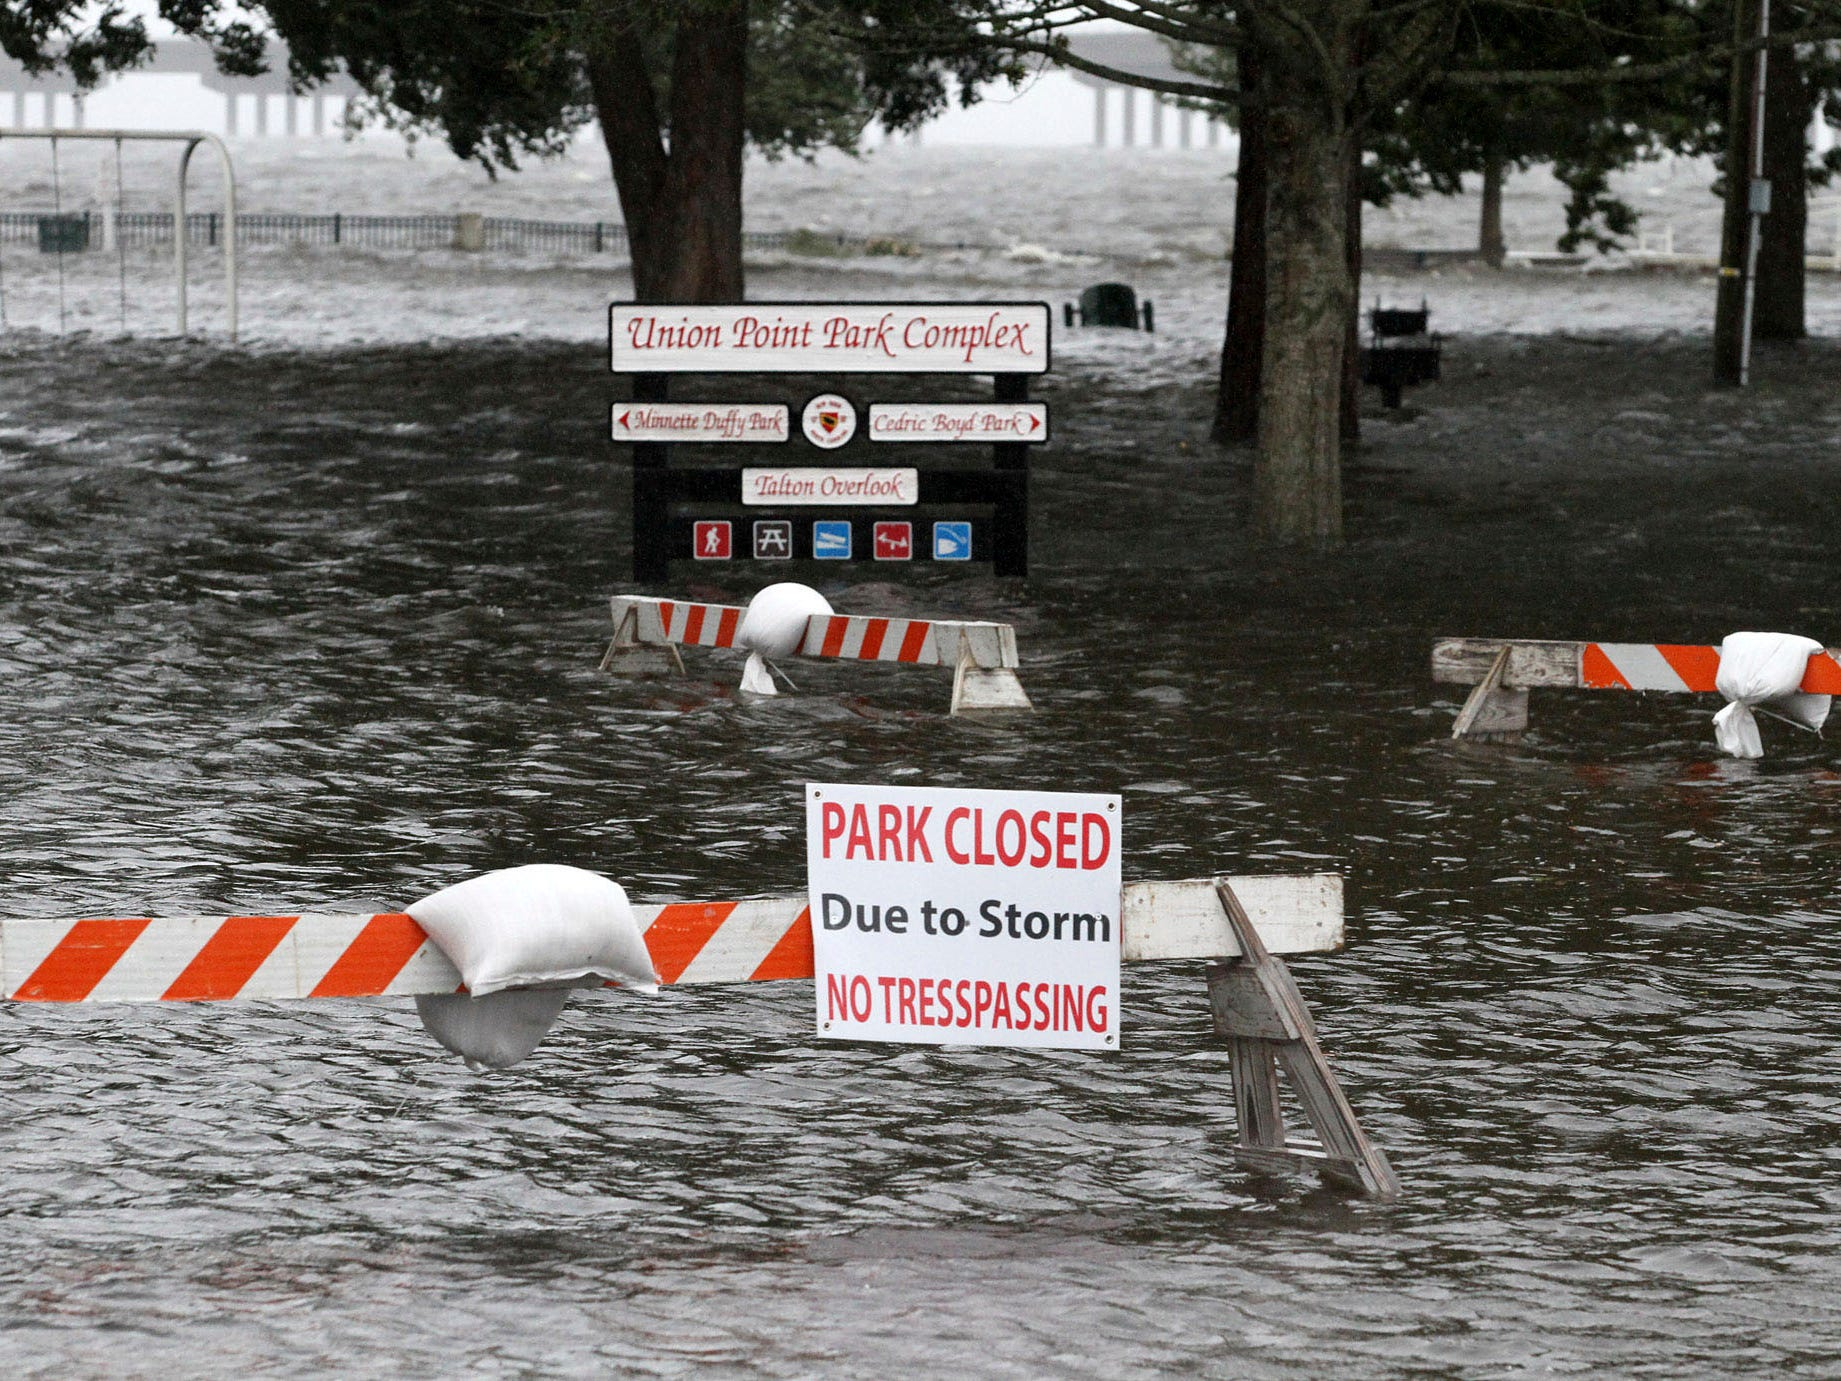 Union Point Park is flooded with rising water from the Neuse and Trent Rivers in New Bern, N.C. Thursday, Sept. 13, 2018. Hurricane Florence already has inundated coastal streets with ocean water and left tens of thousands without power, and more is to come.  (Gray Whitley/Sun Journal via AP) ORG XMIT: NCBER107